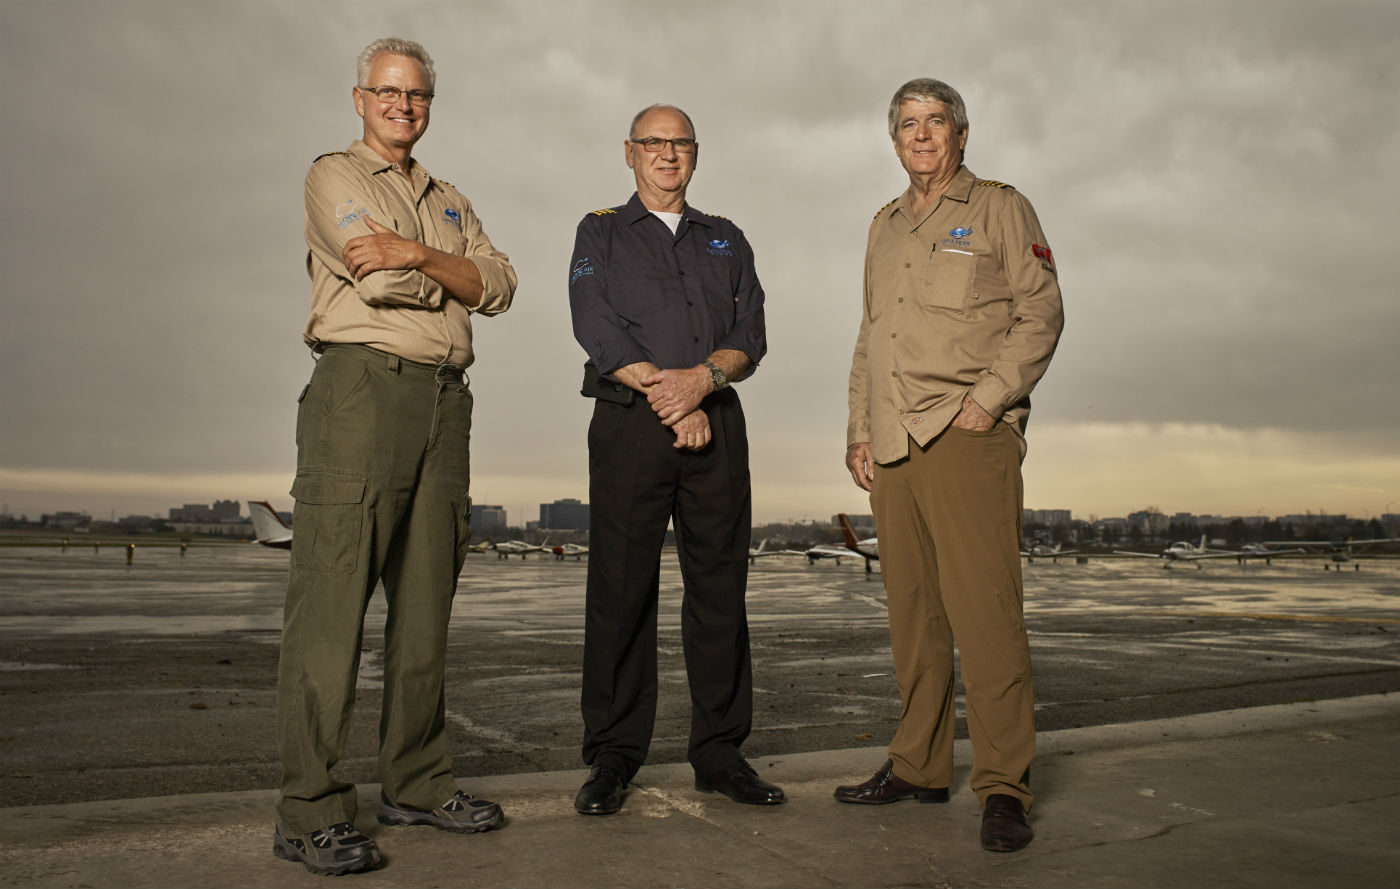 Pilot Russ Airey, left, stands with his co-pilot Harold Fast and fellow pilot Dave McElroy at an airfield in Ontario. The three plan to circumnavigate Central and South America next year to raise money for Hope Air. Stephen Caissie Photo